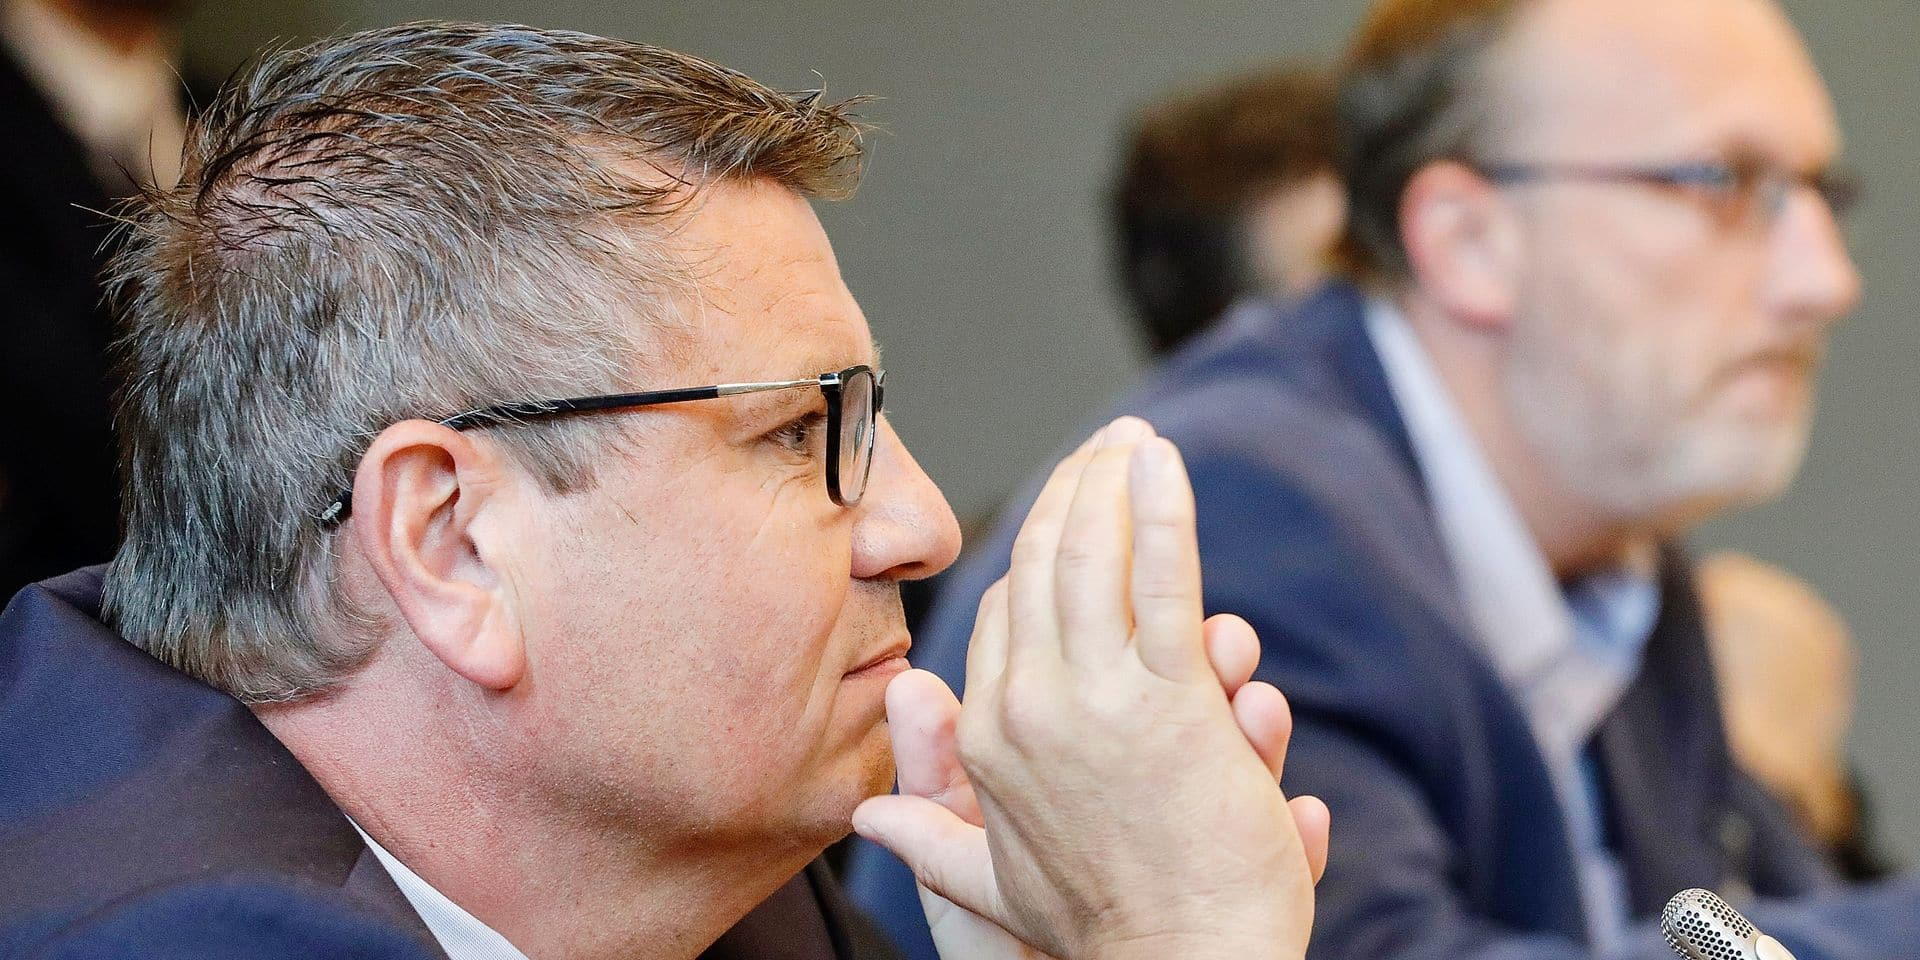 Fernand Grifnee, Administrator of Ores pictured during a session of the Energy commission at the Walloon Parliament, on Monday 12 June 2017, in Namur. BELGA PHOTO THIERRY ROGE